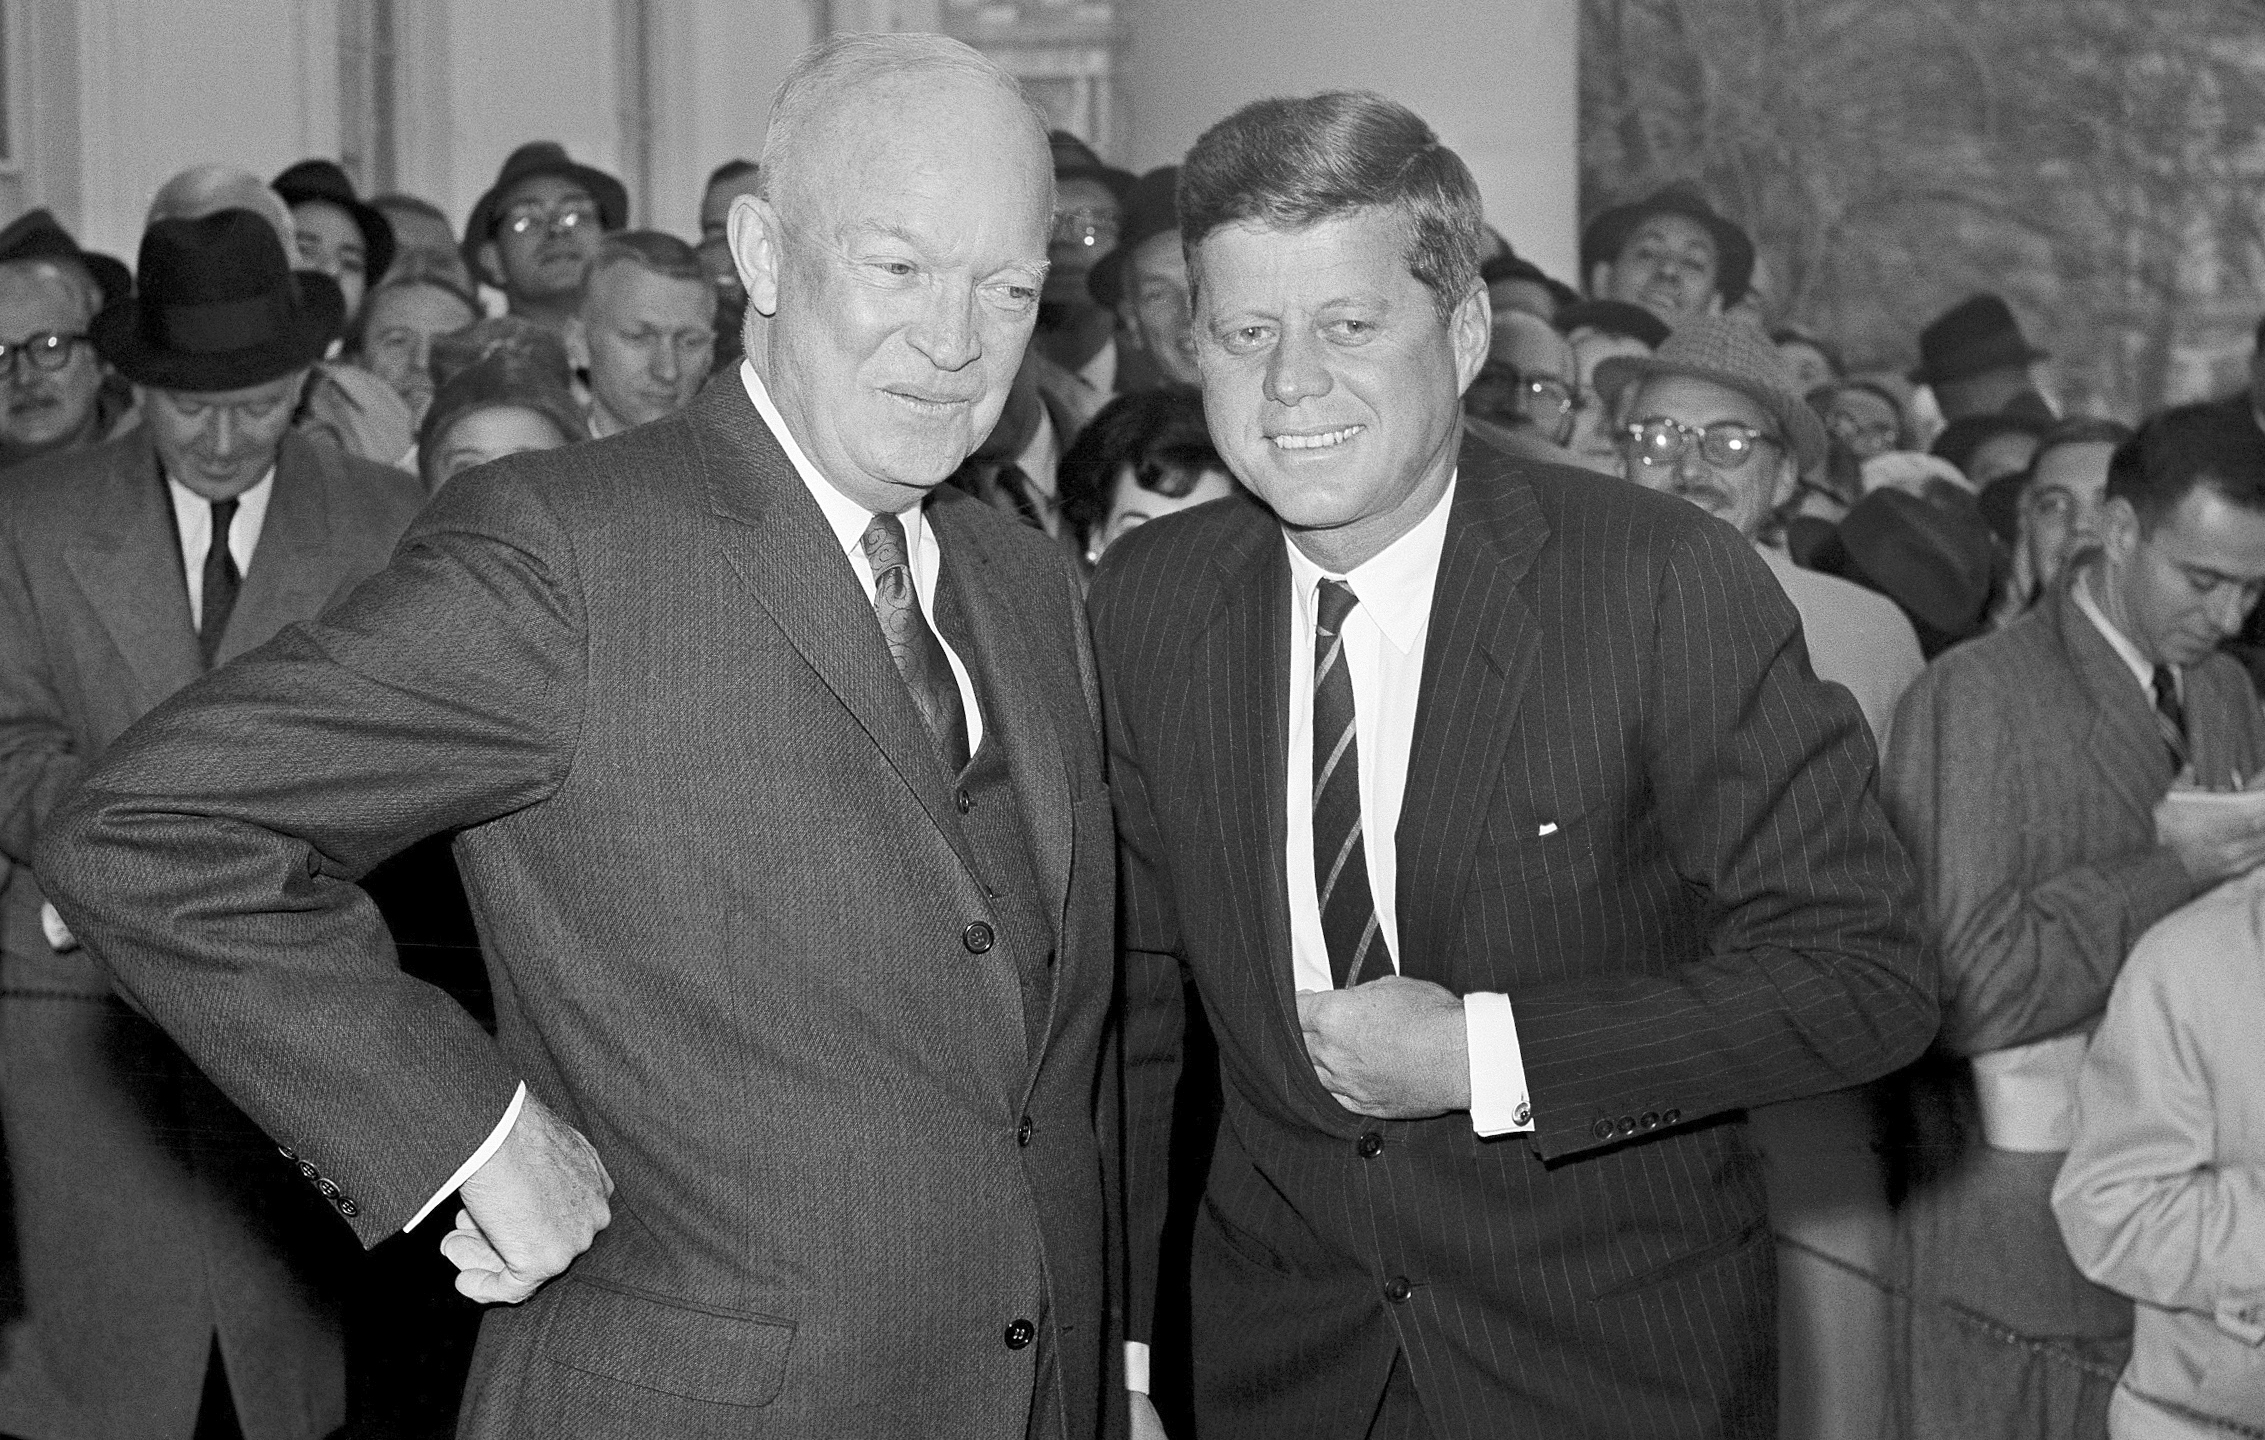 Dwight Eisnehower, John Kennedy, Dwight Eisenhower, John F. Kennedy